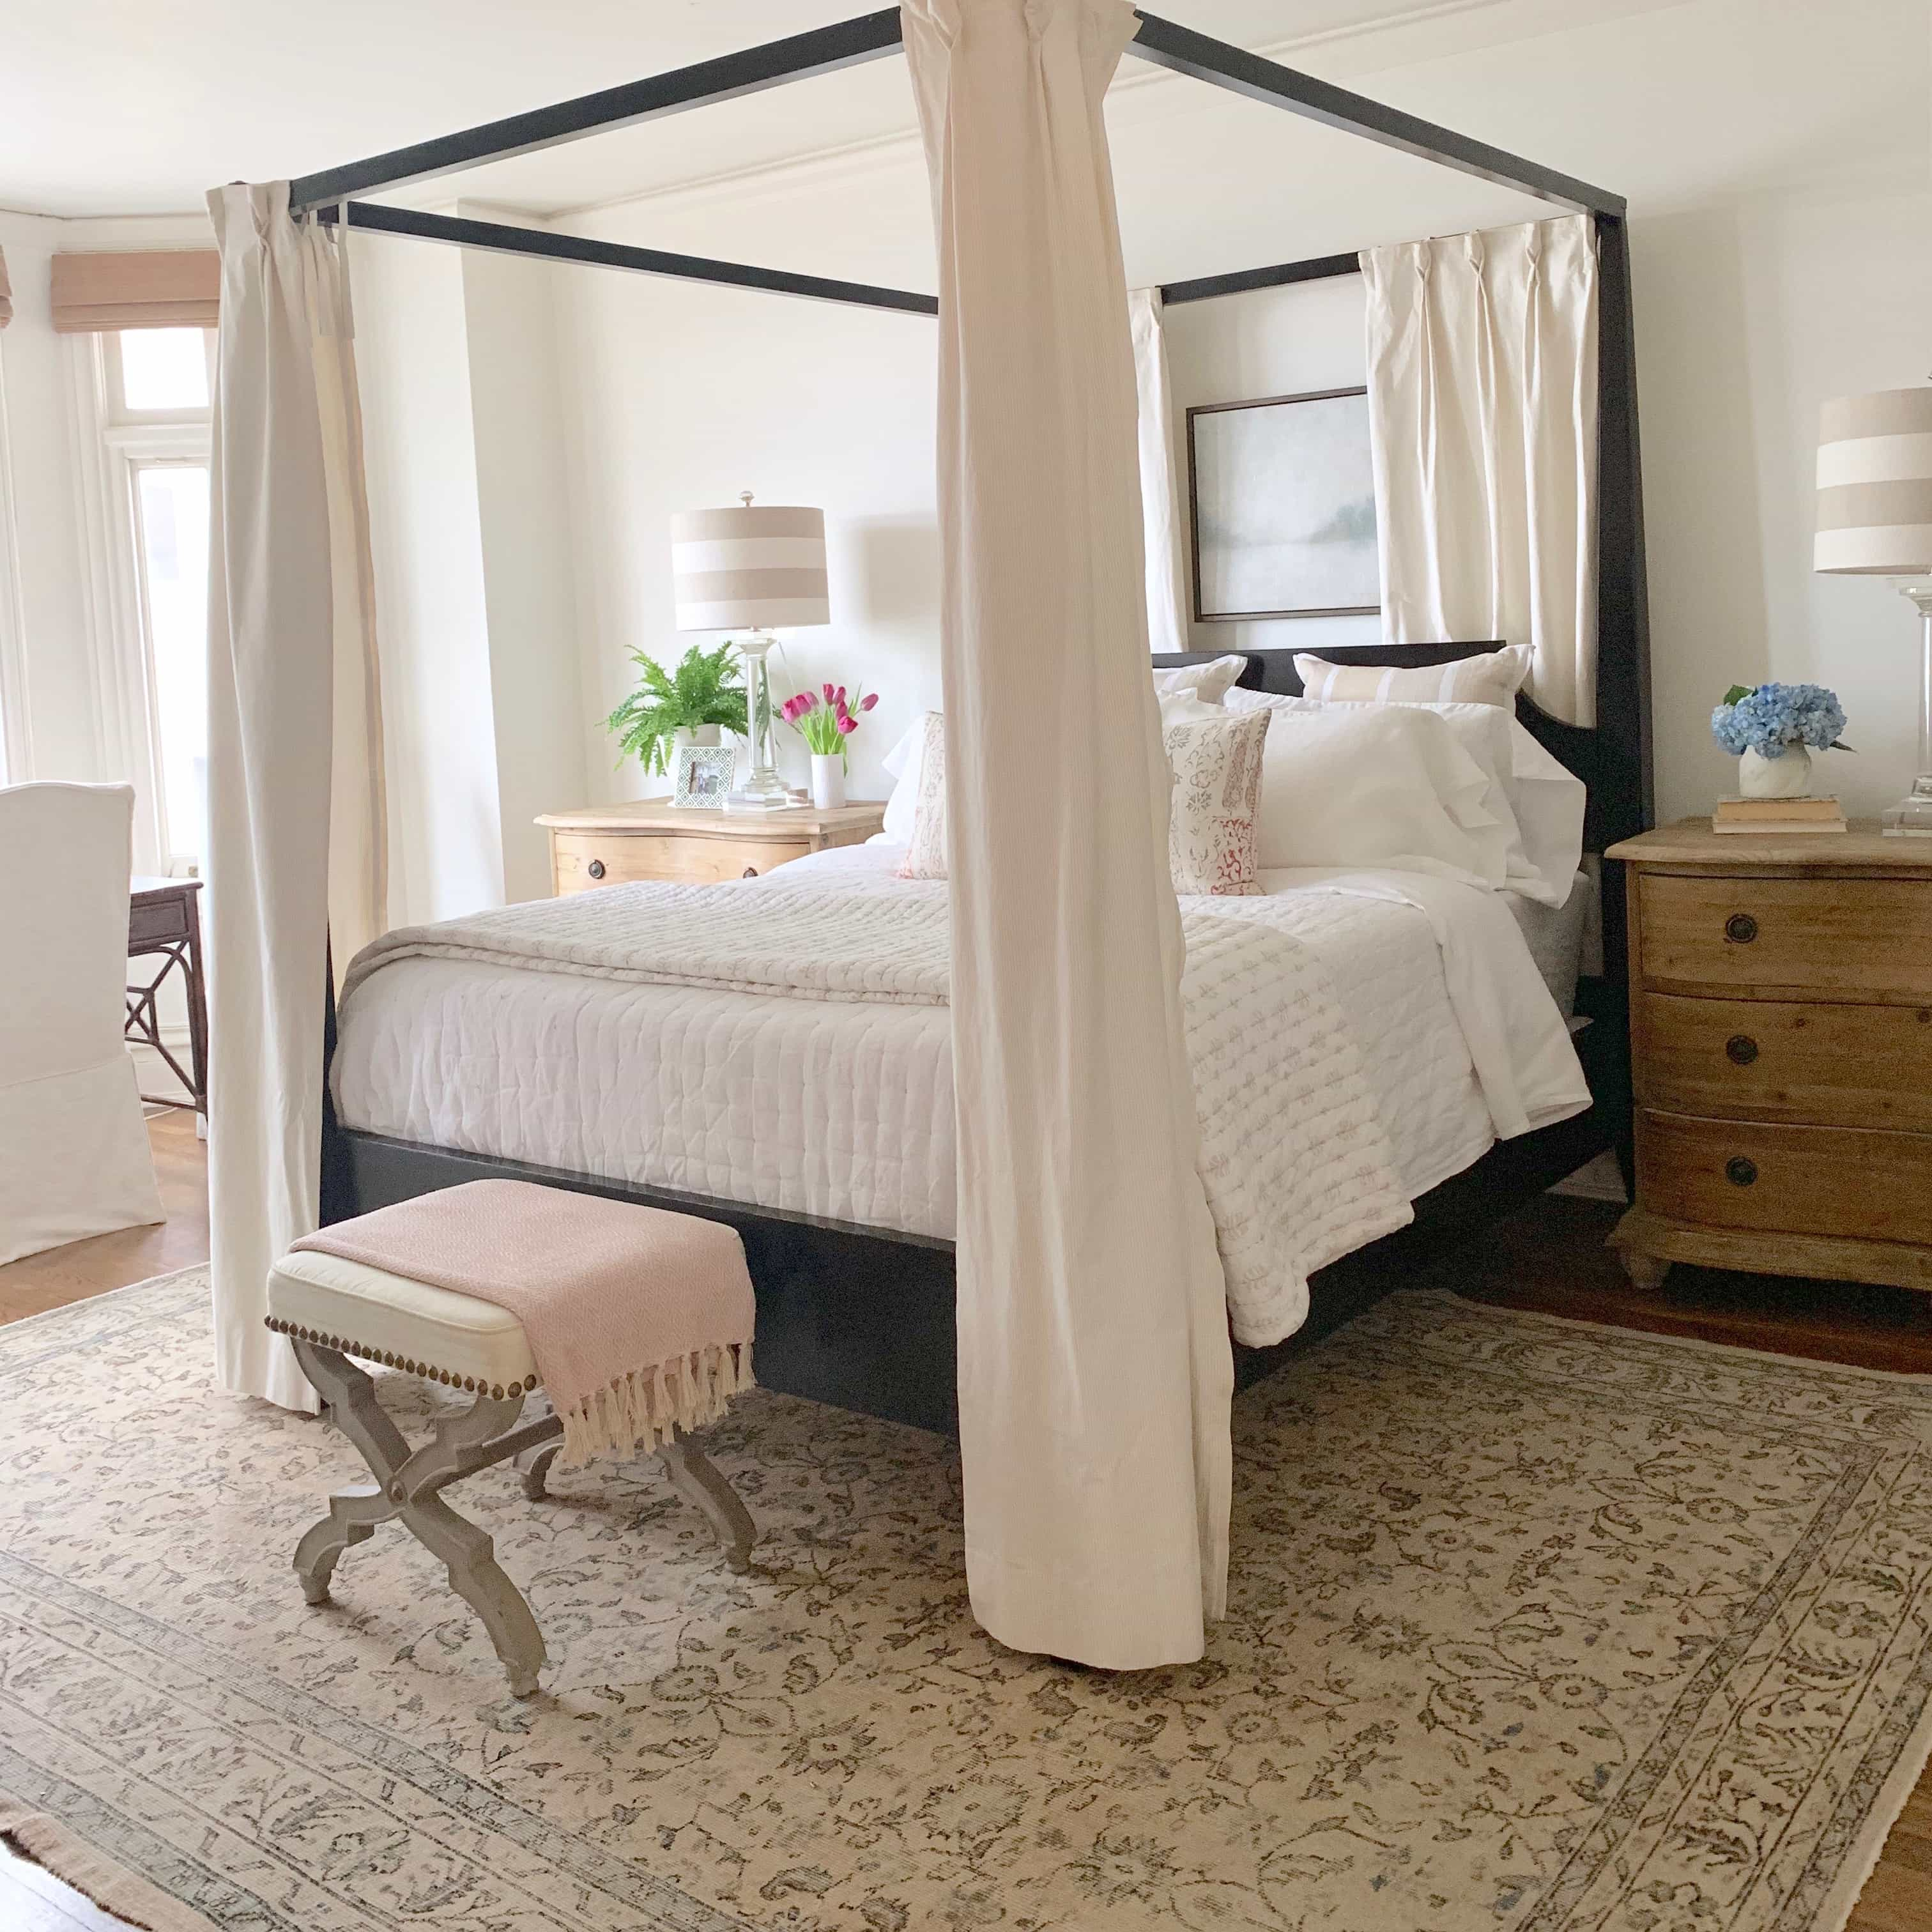 four poster bed, bench, chest with lamp